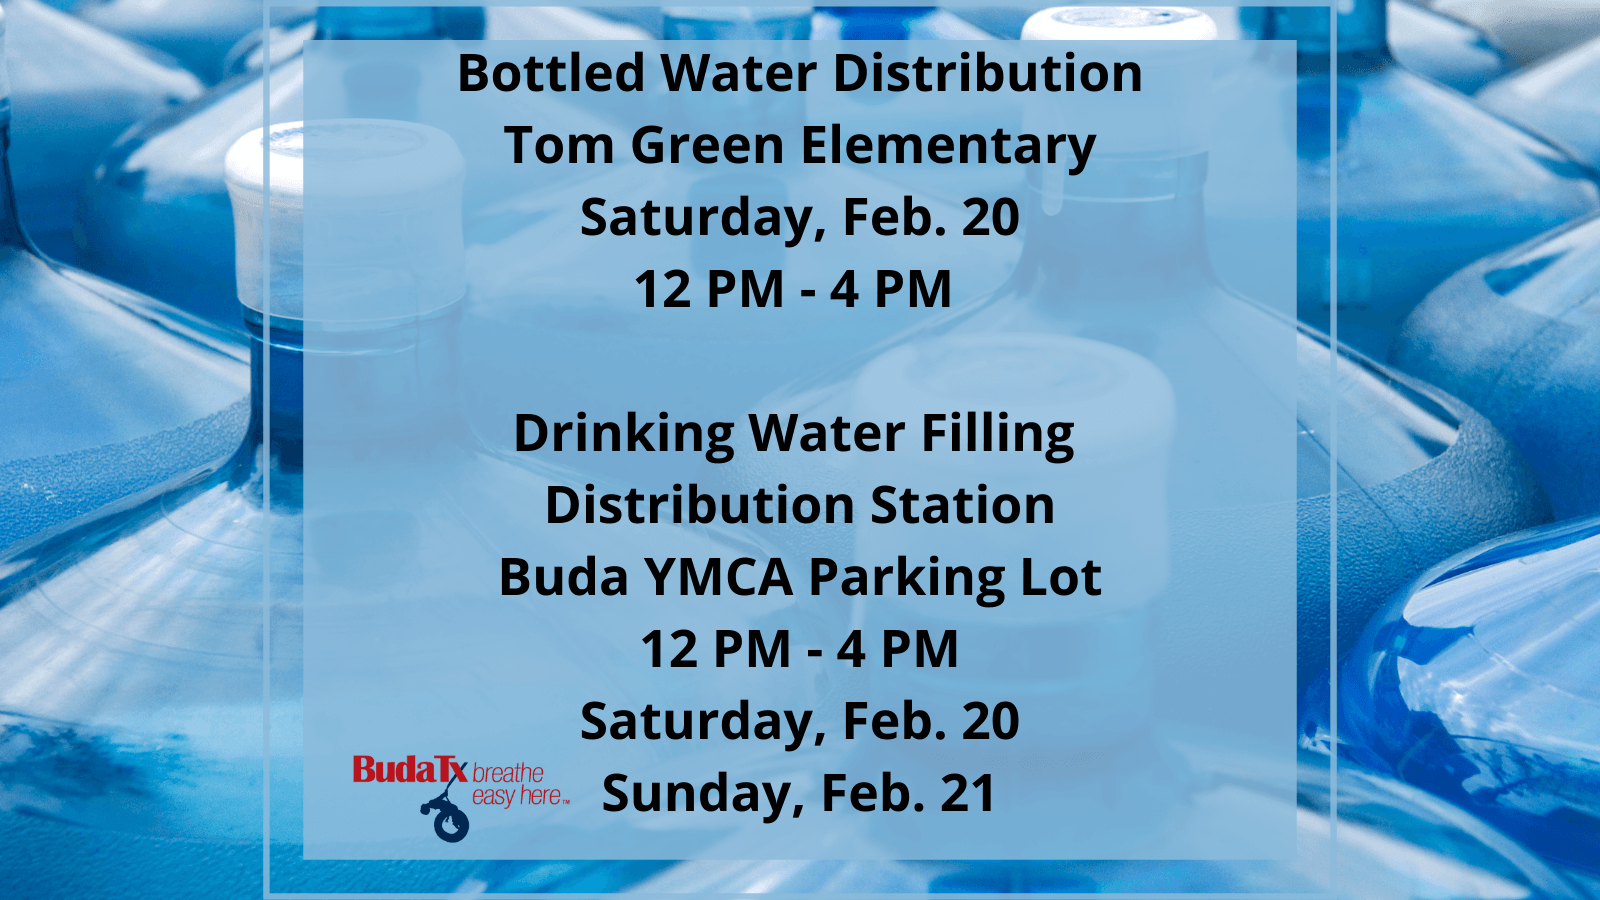 Copy of Drinking Water Filling Distribution Station Buda YMCA Parking Lot 12 PM - 4 PM Saturday, Feb